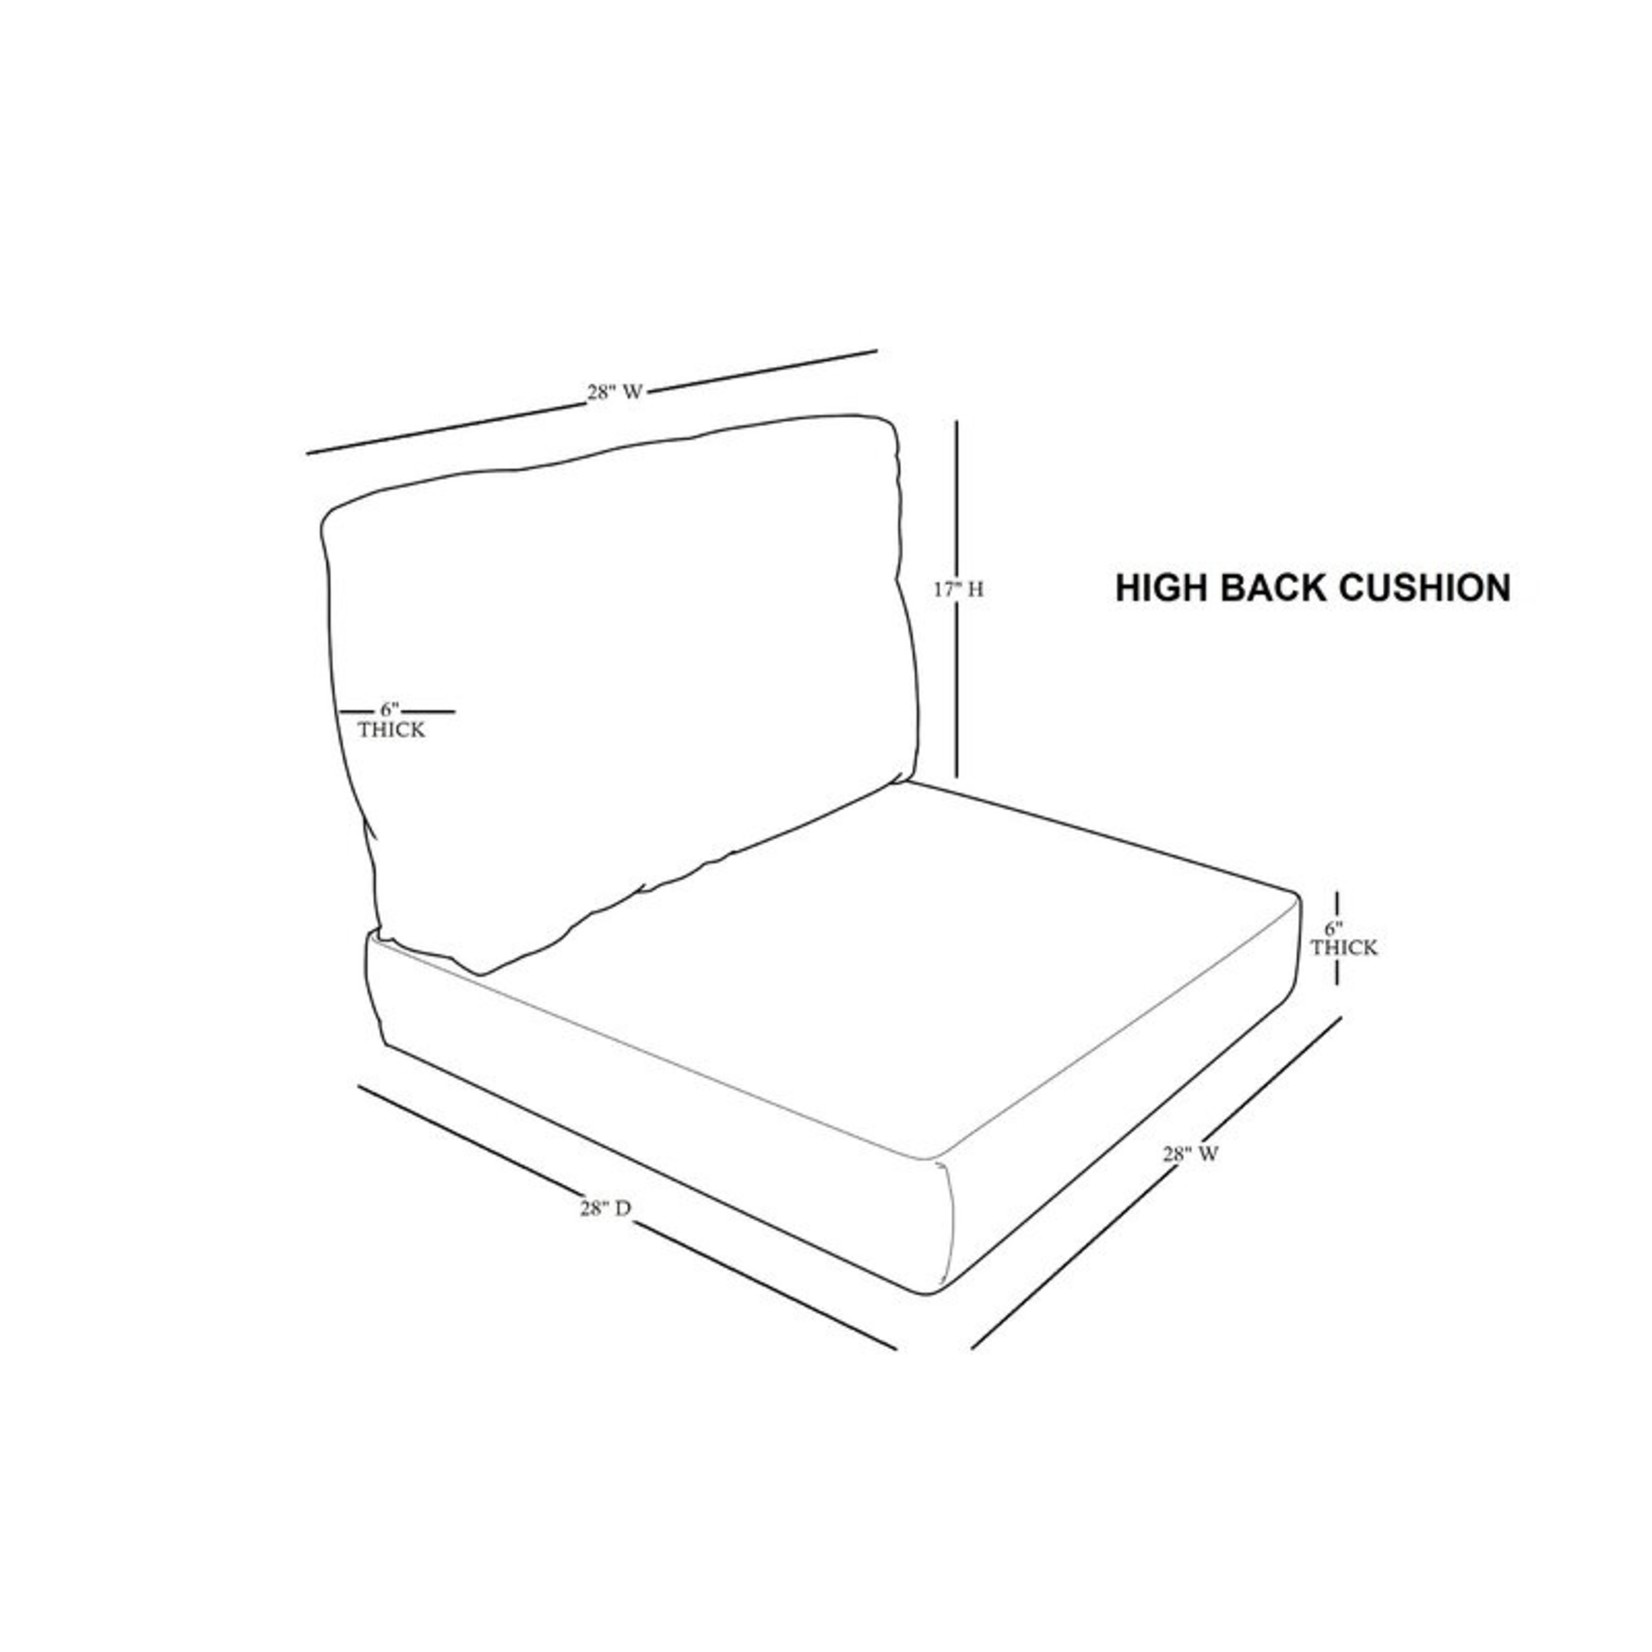 *2 Piece Outdoor Lounge Chair Seat/Back Cushion Set - White